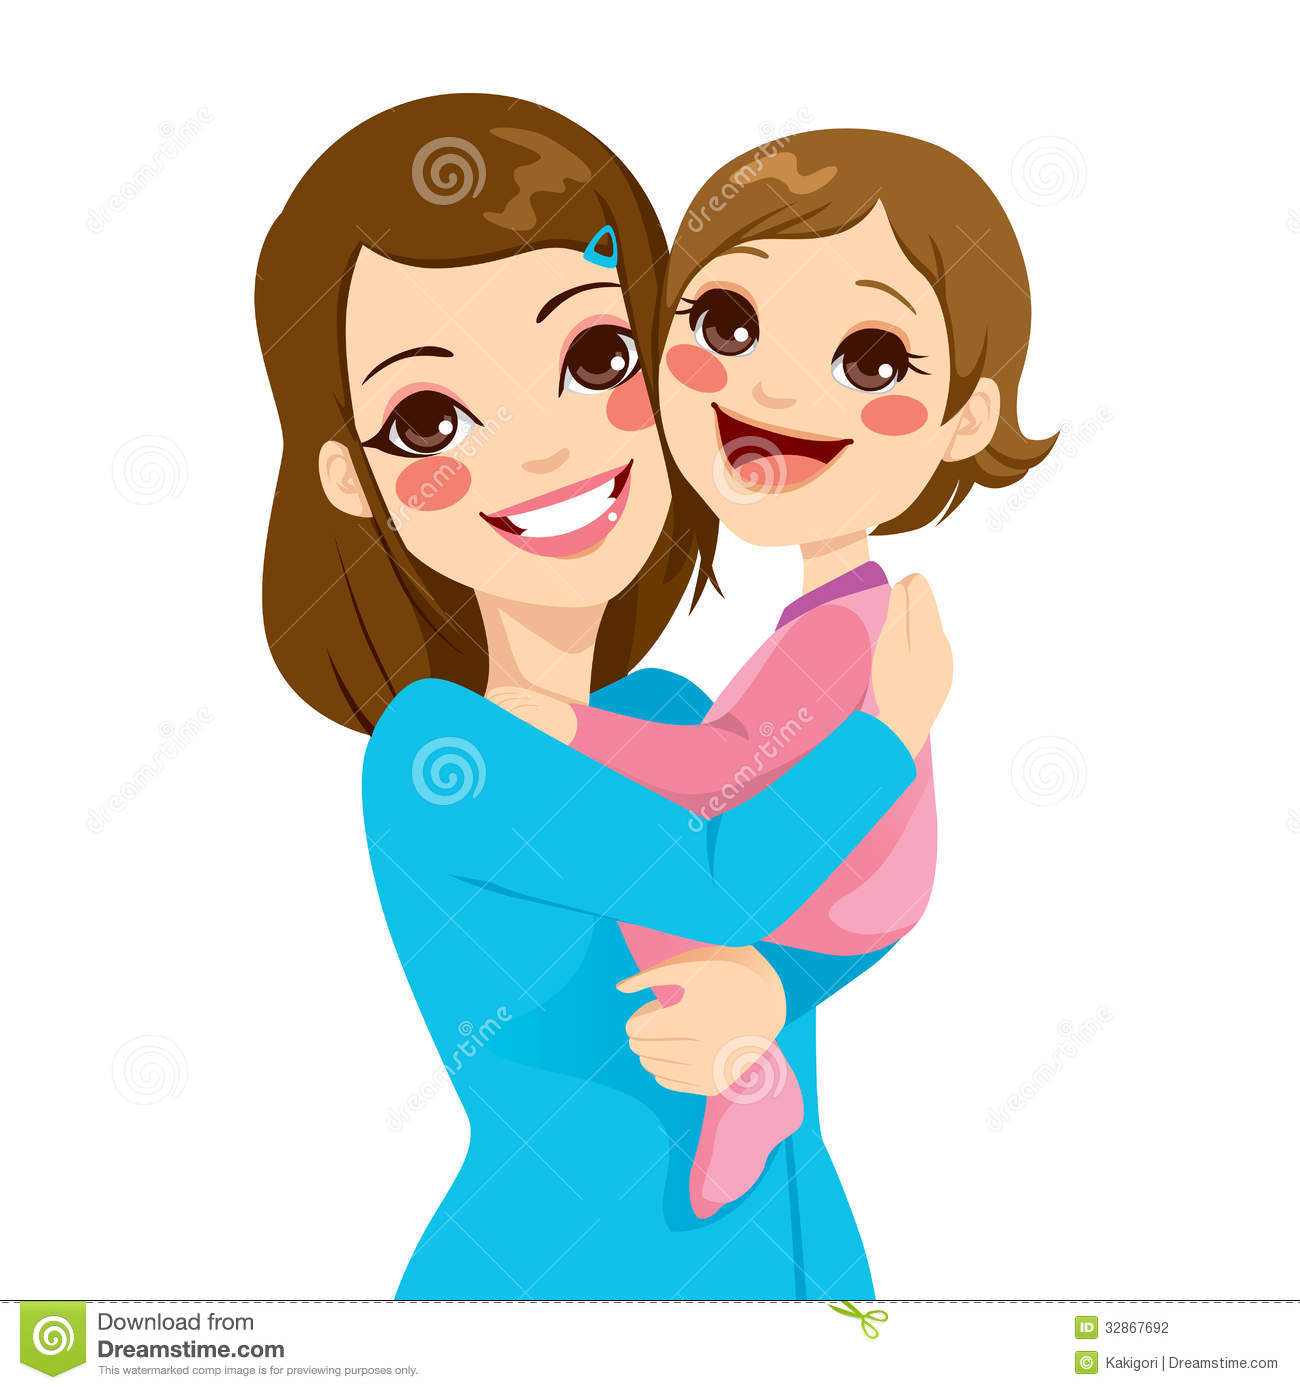 Mother Daughter Clipart at GetDrawings.com.